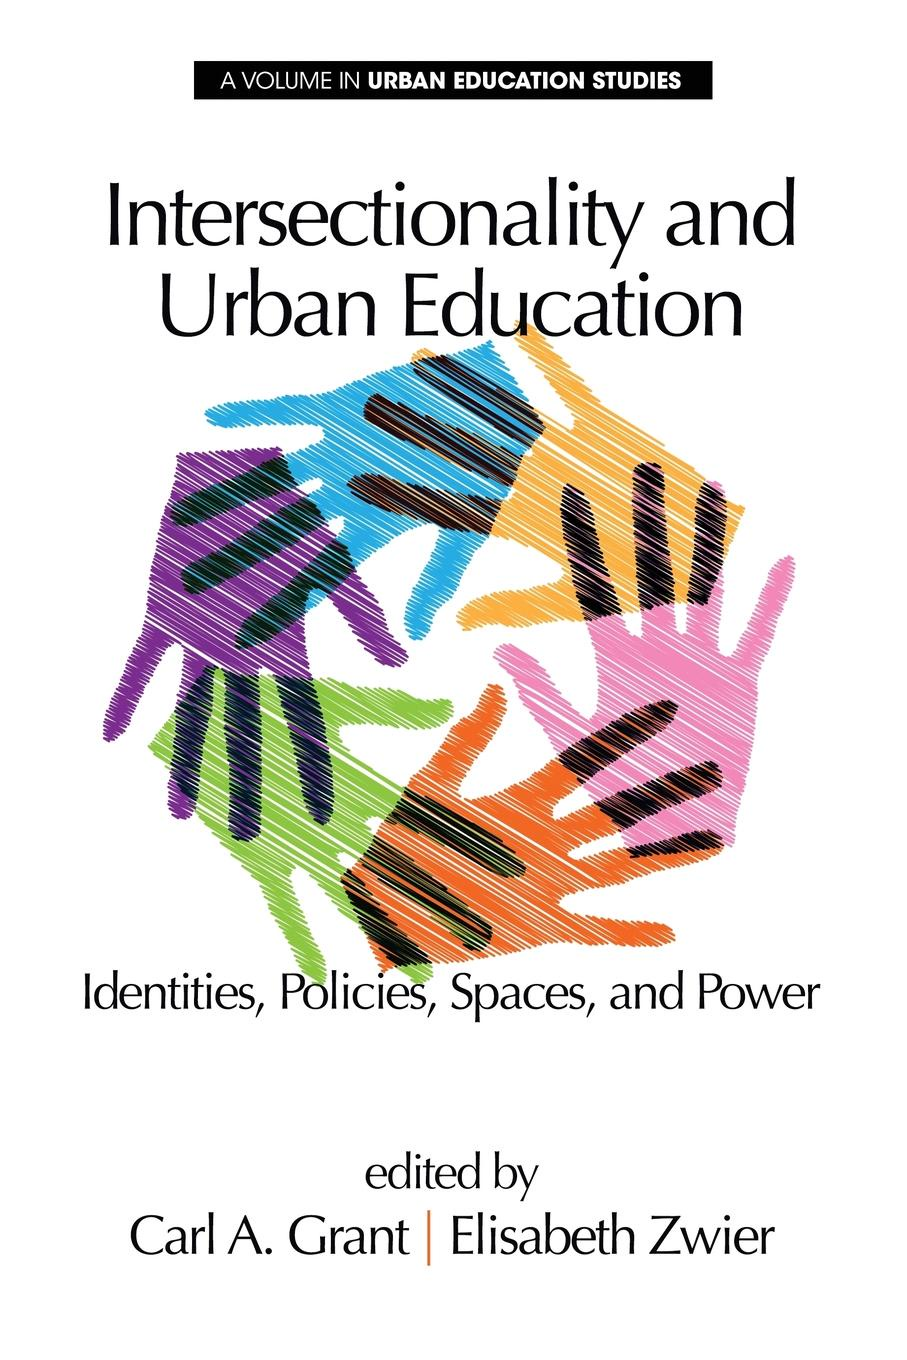 Intersectionality and Urban Education. Identities, Policies, Spaces . Power недорго, оригинальная цена